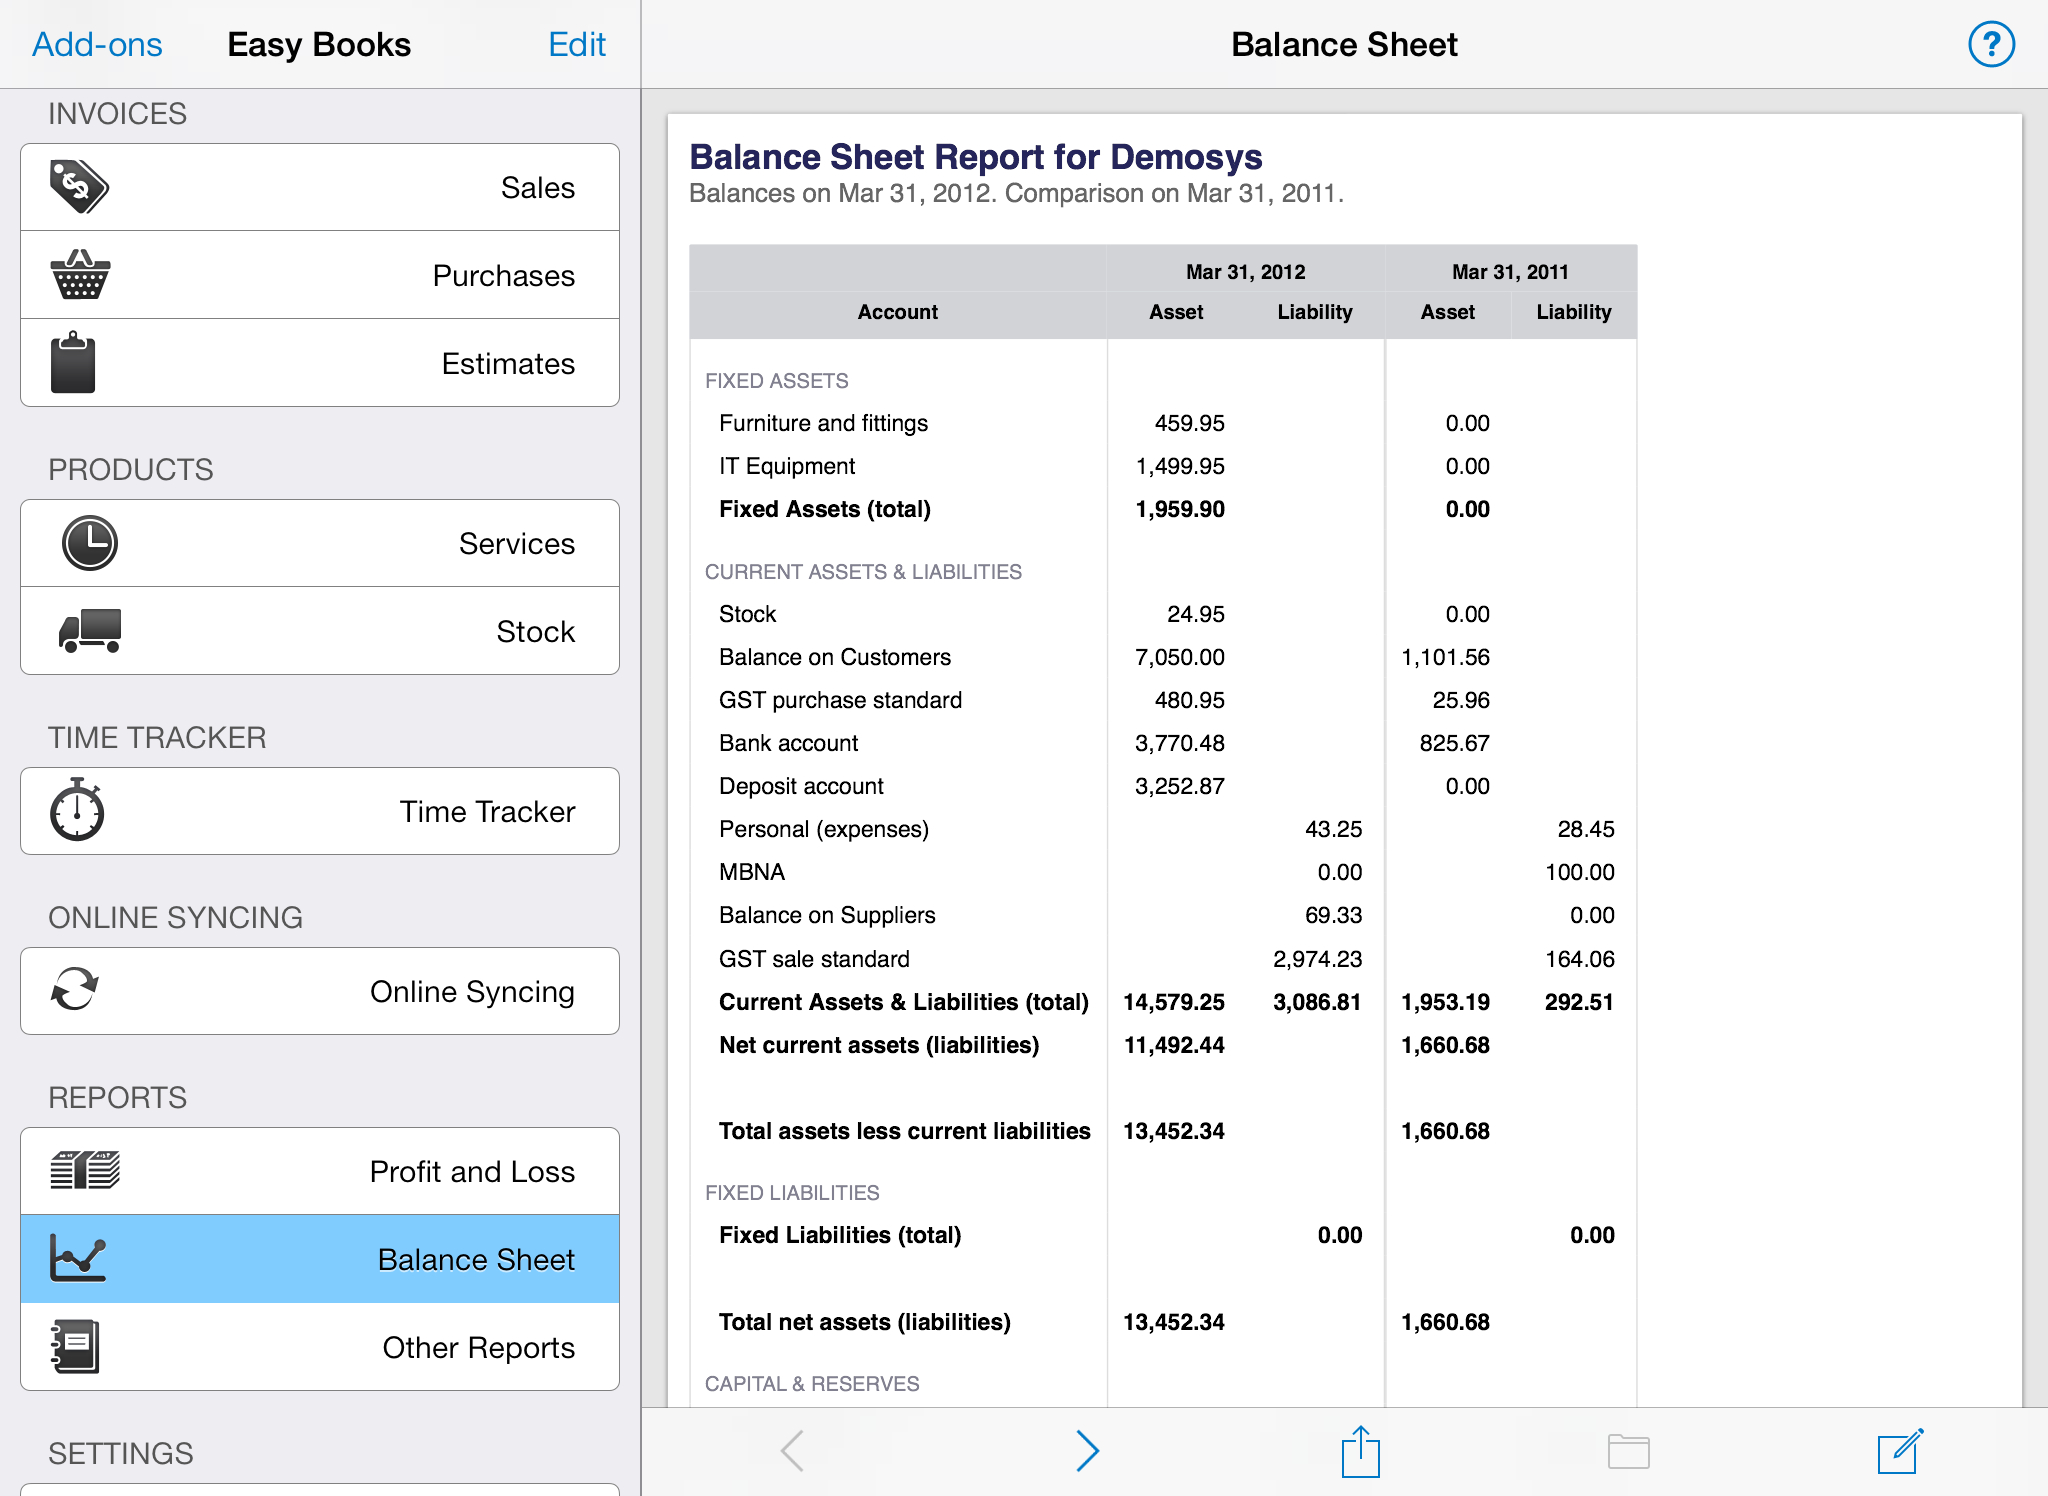 Spreadsheet For Ipad Free Download With Easy Books For Ios  Easy Books